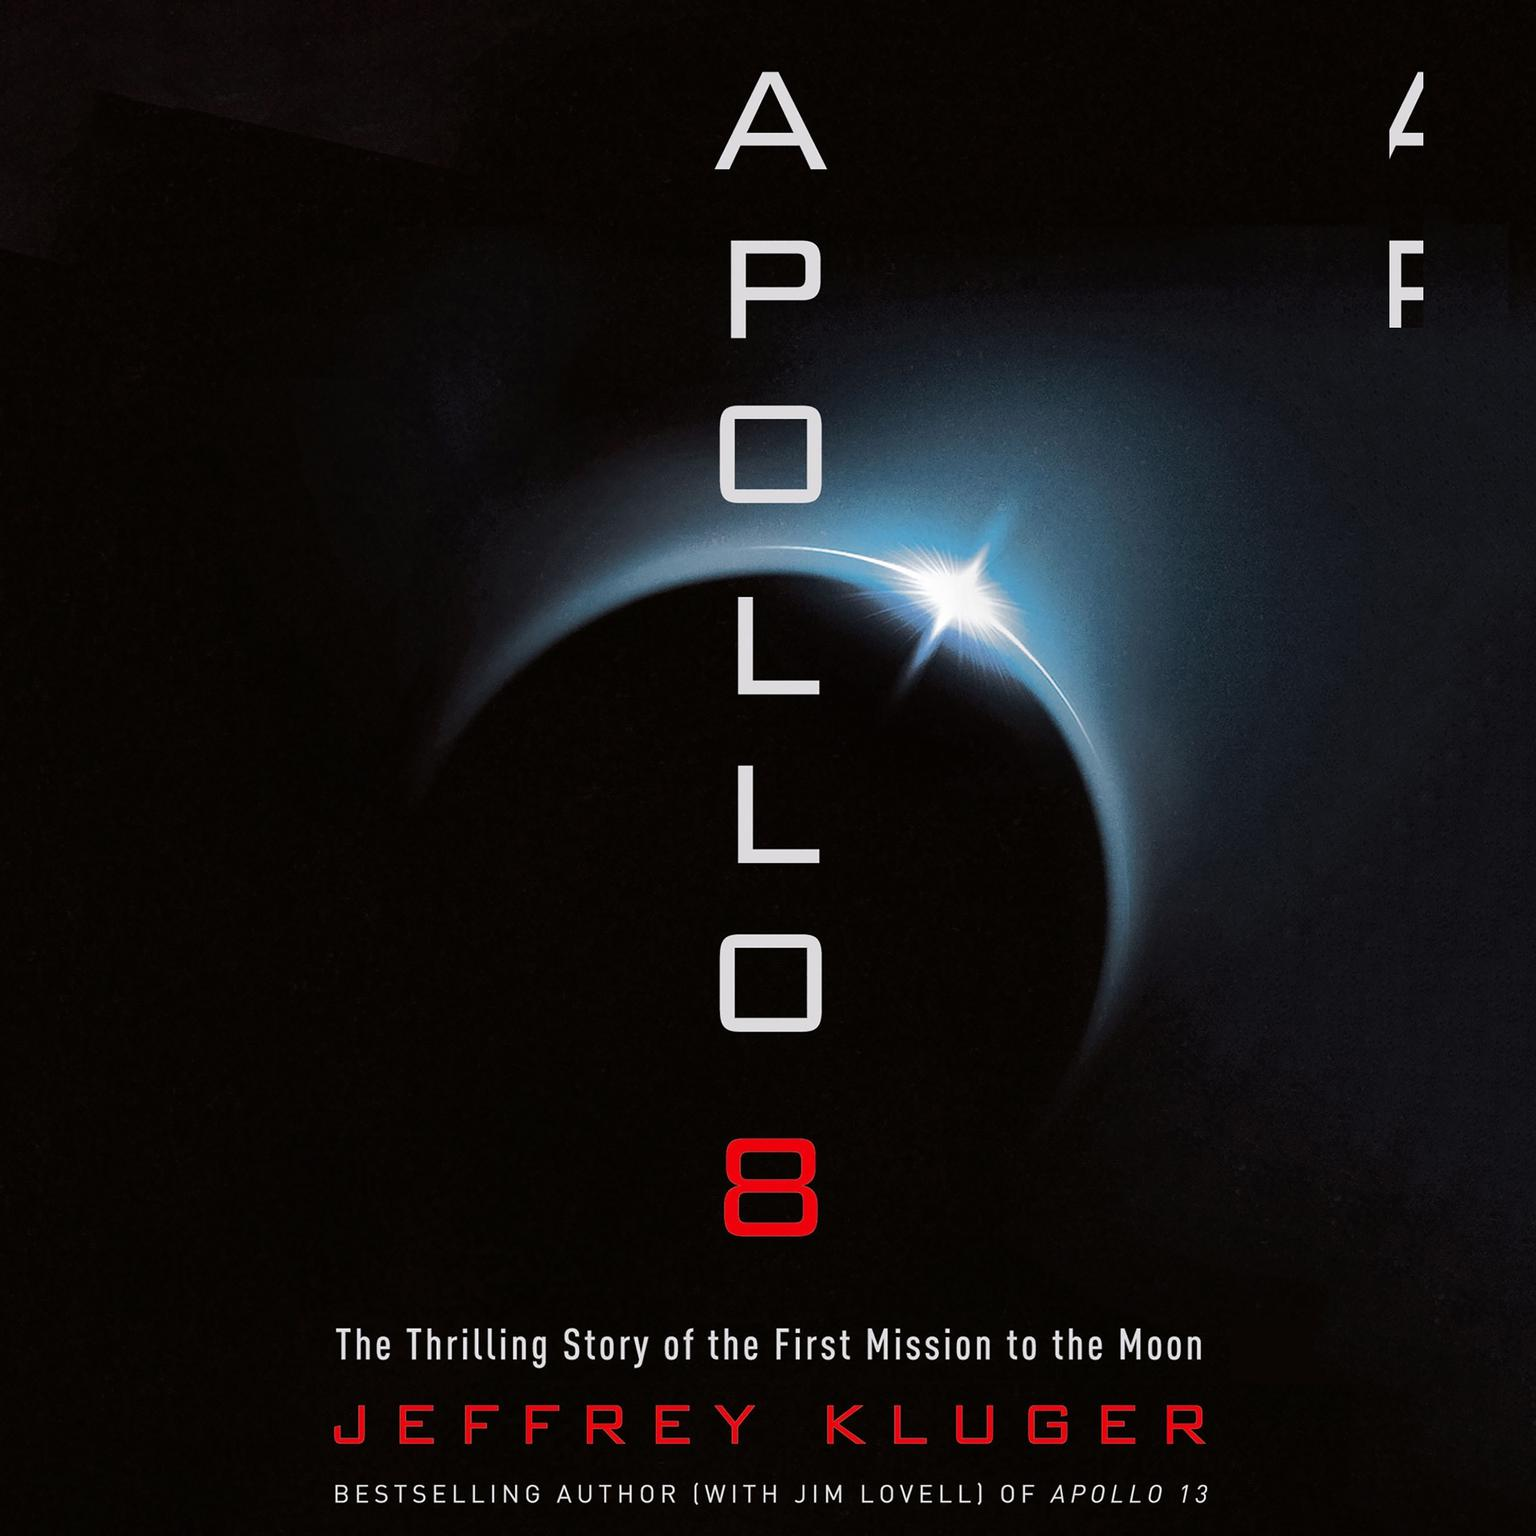 Apollo 8: The Thrilling Story of the First Mission to the Moon Audiobook, by Jeffrey Kluger